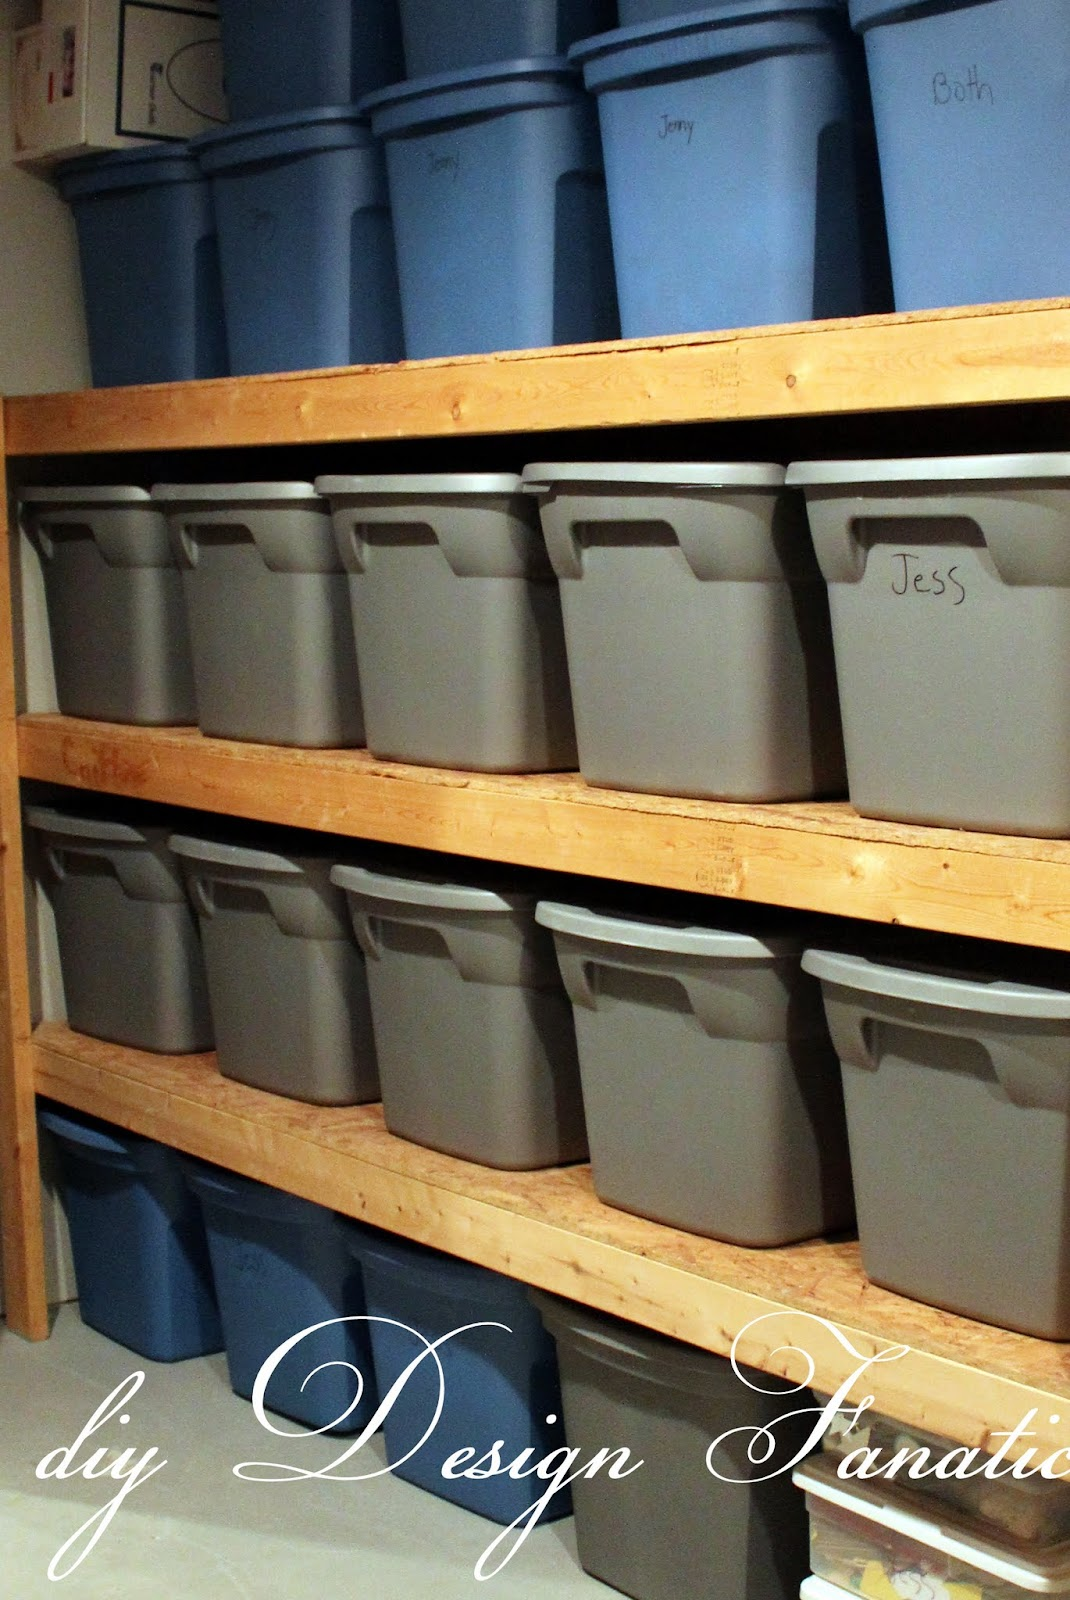 Storage Diydesignfanatic Shelves Diy Basement